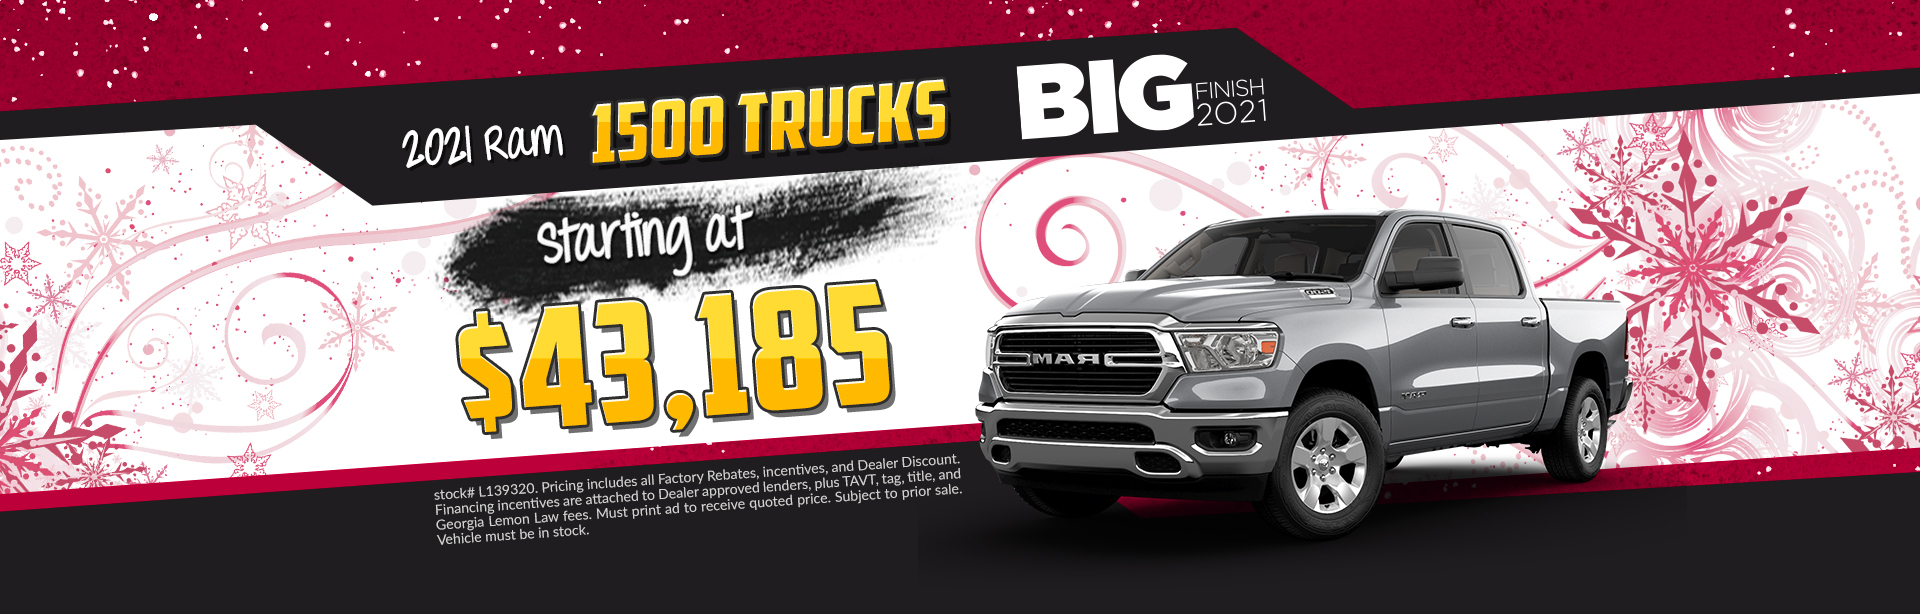 2020 Ram 1500 - Lease for $419 per month